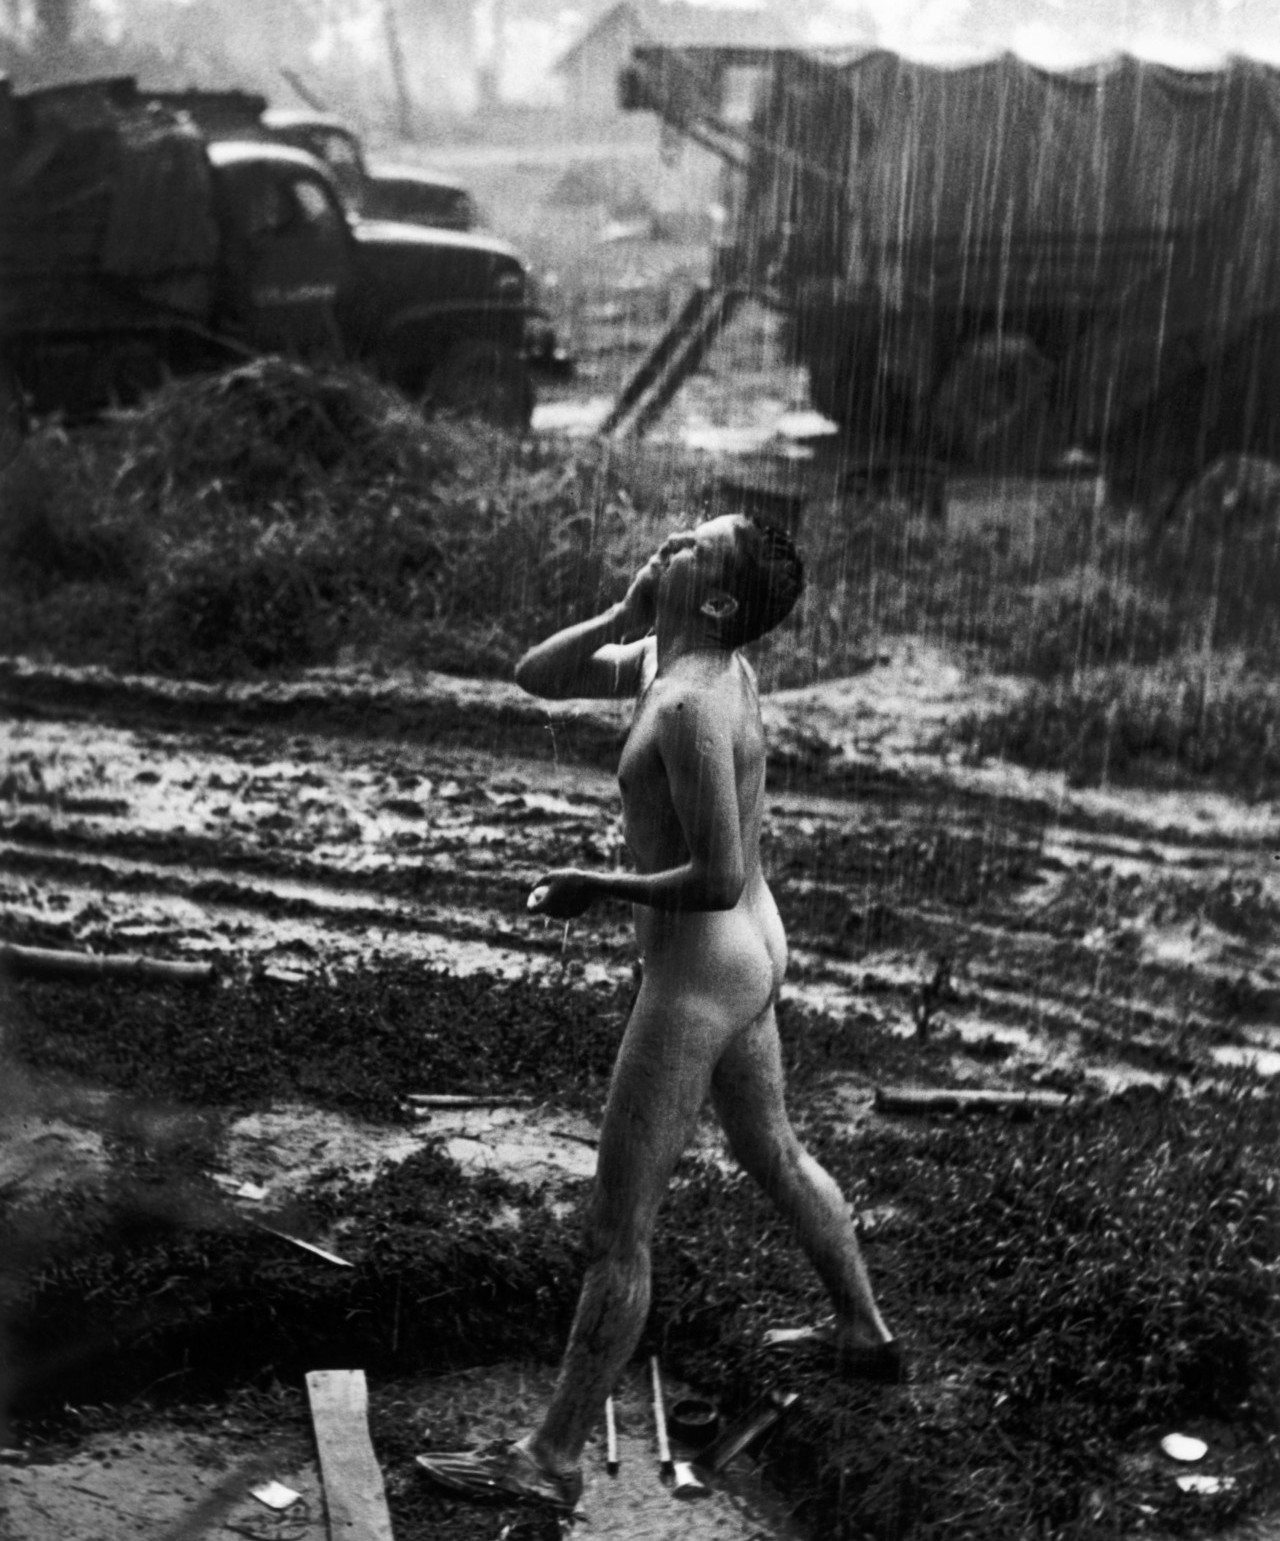 US soldier washing in the rain